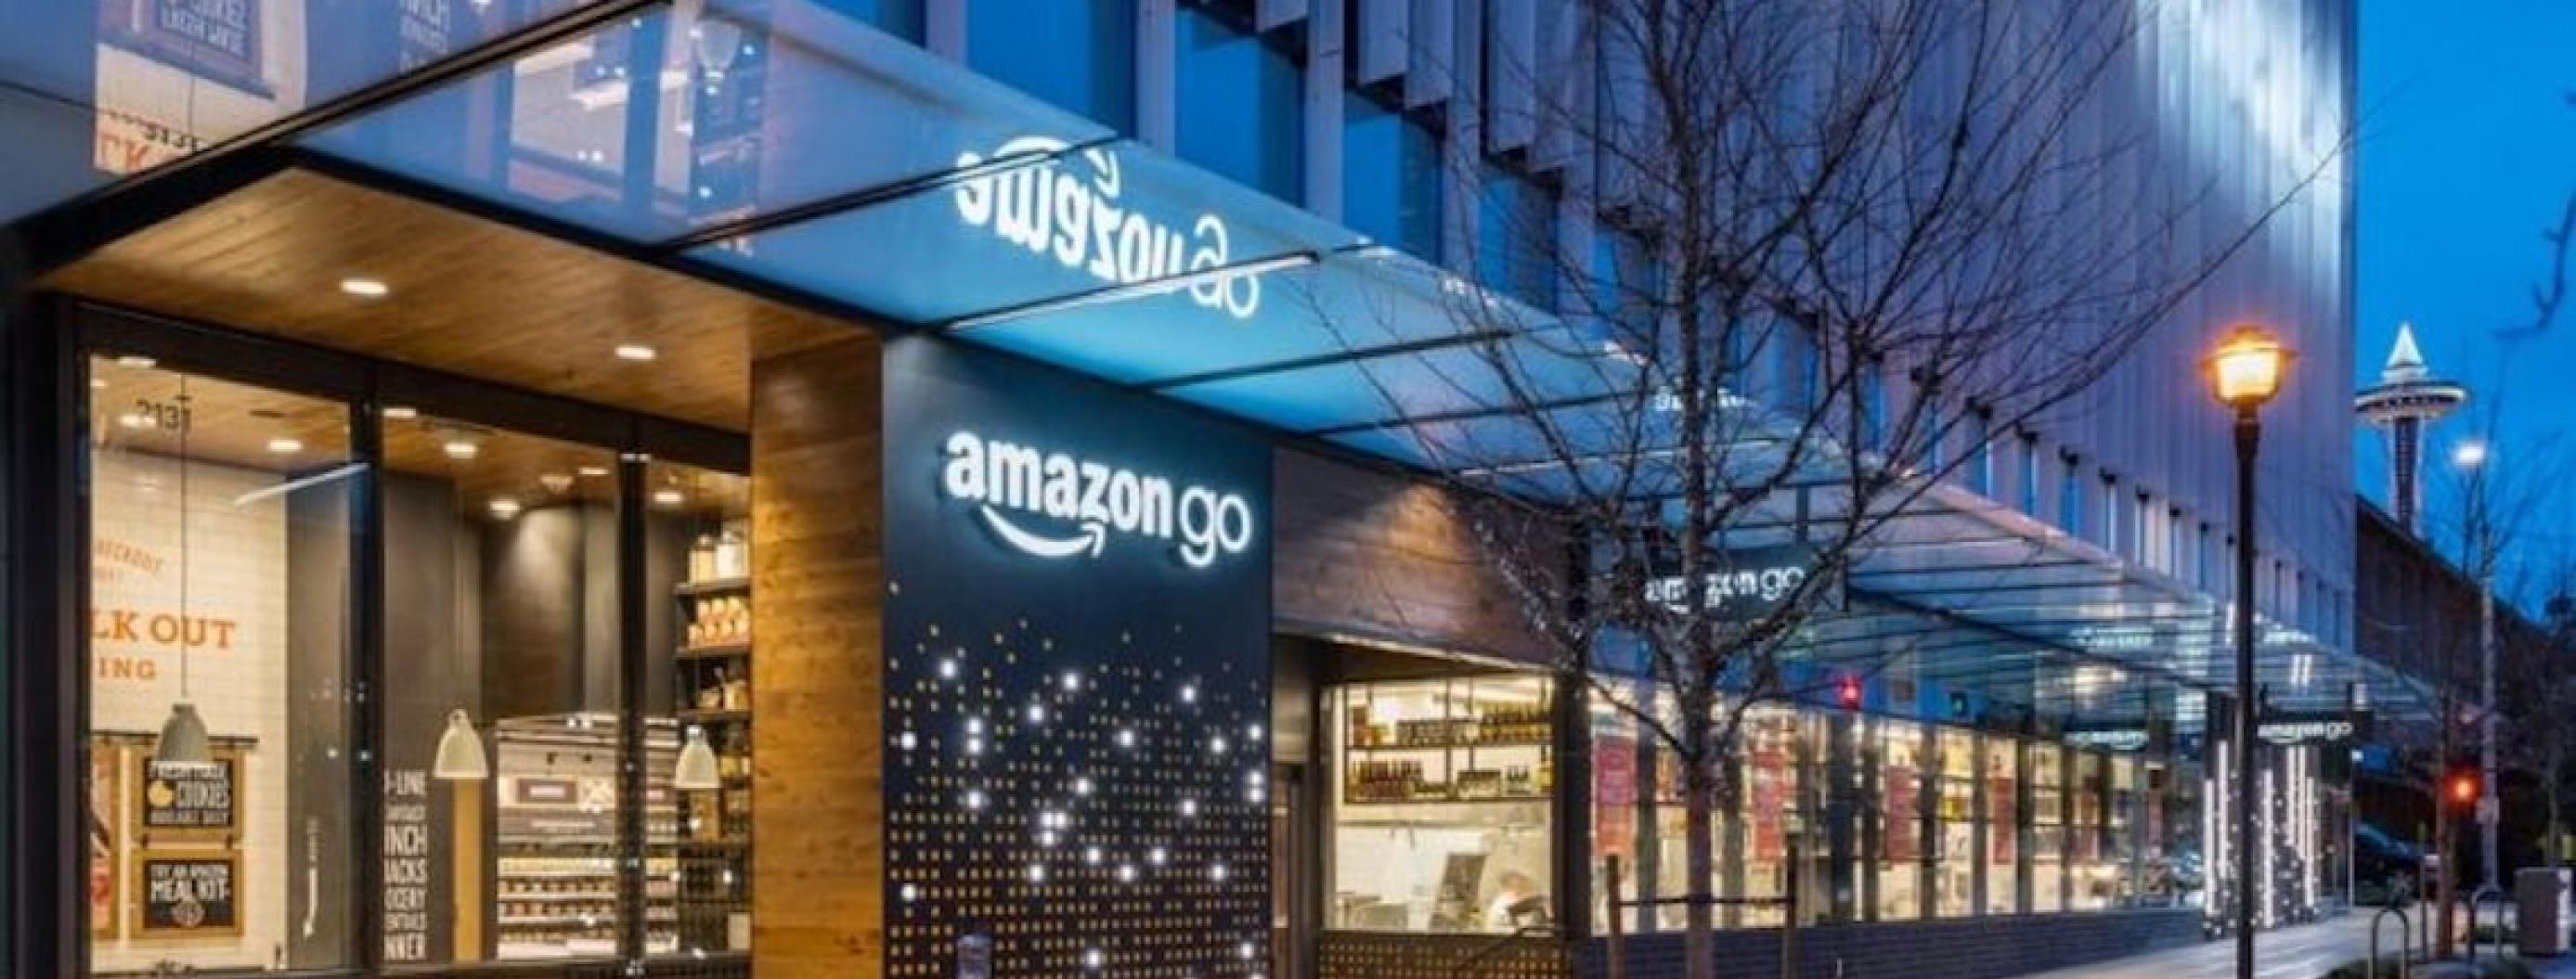 Amazon Plans to Open 3,000 Cashier-Less Go Stores By 2021